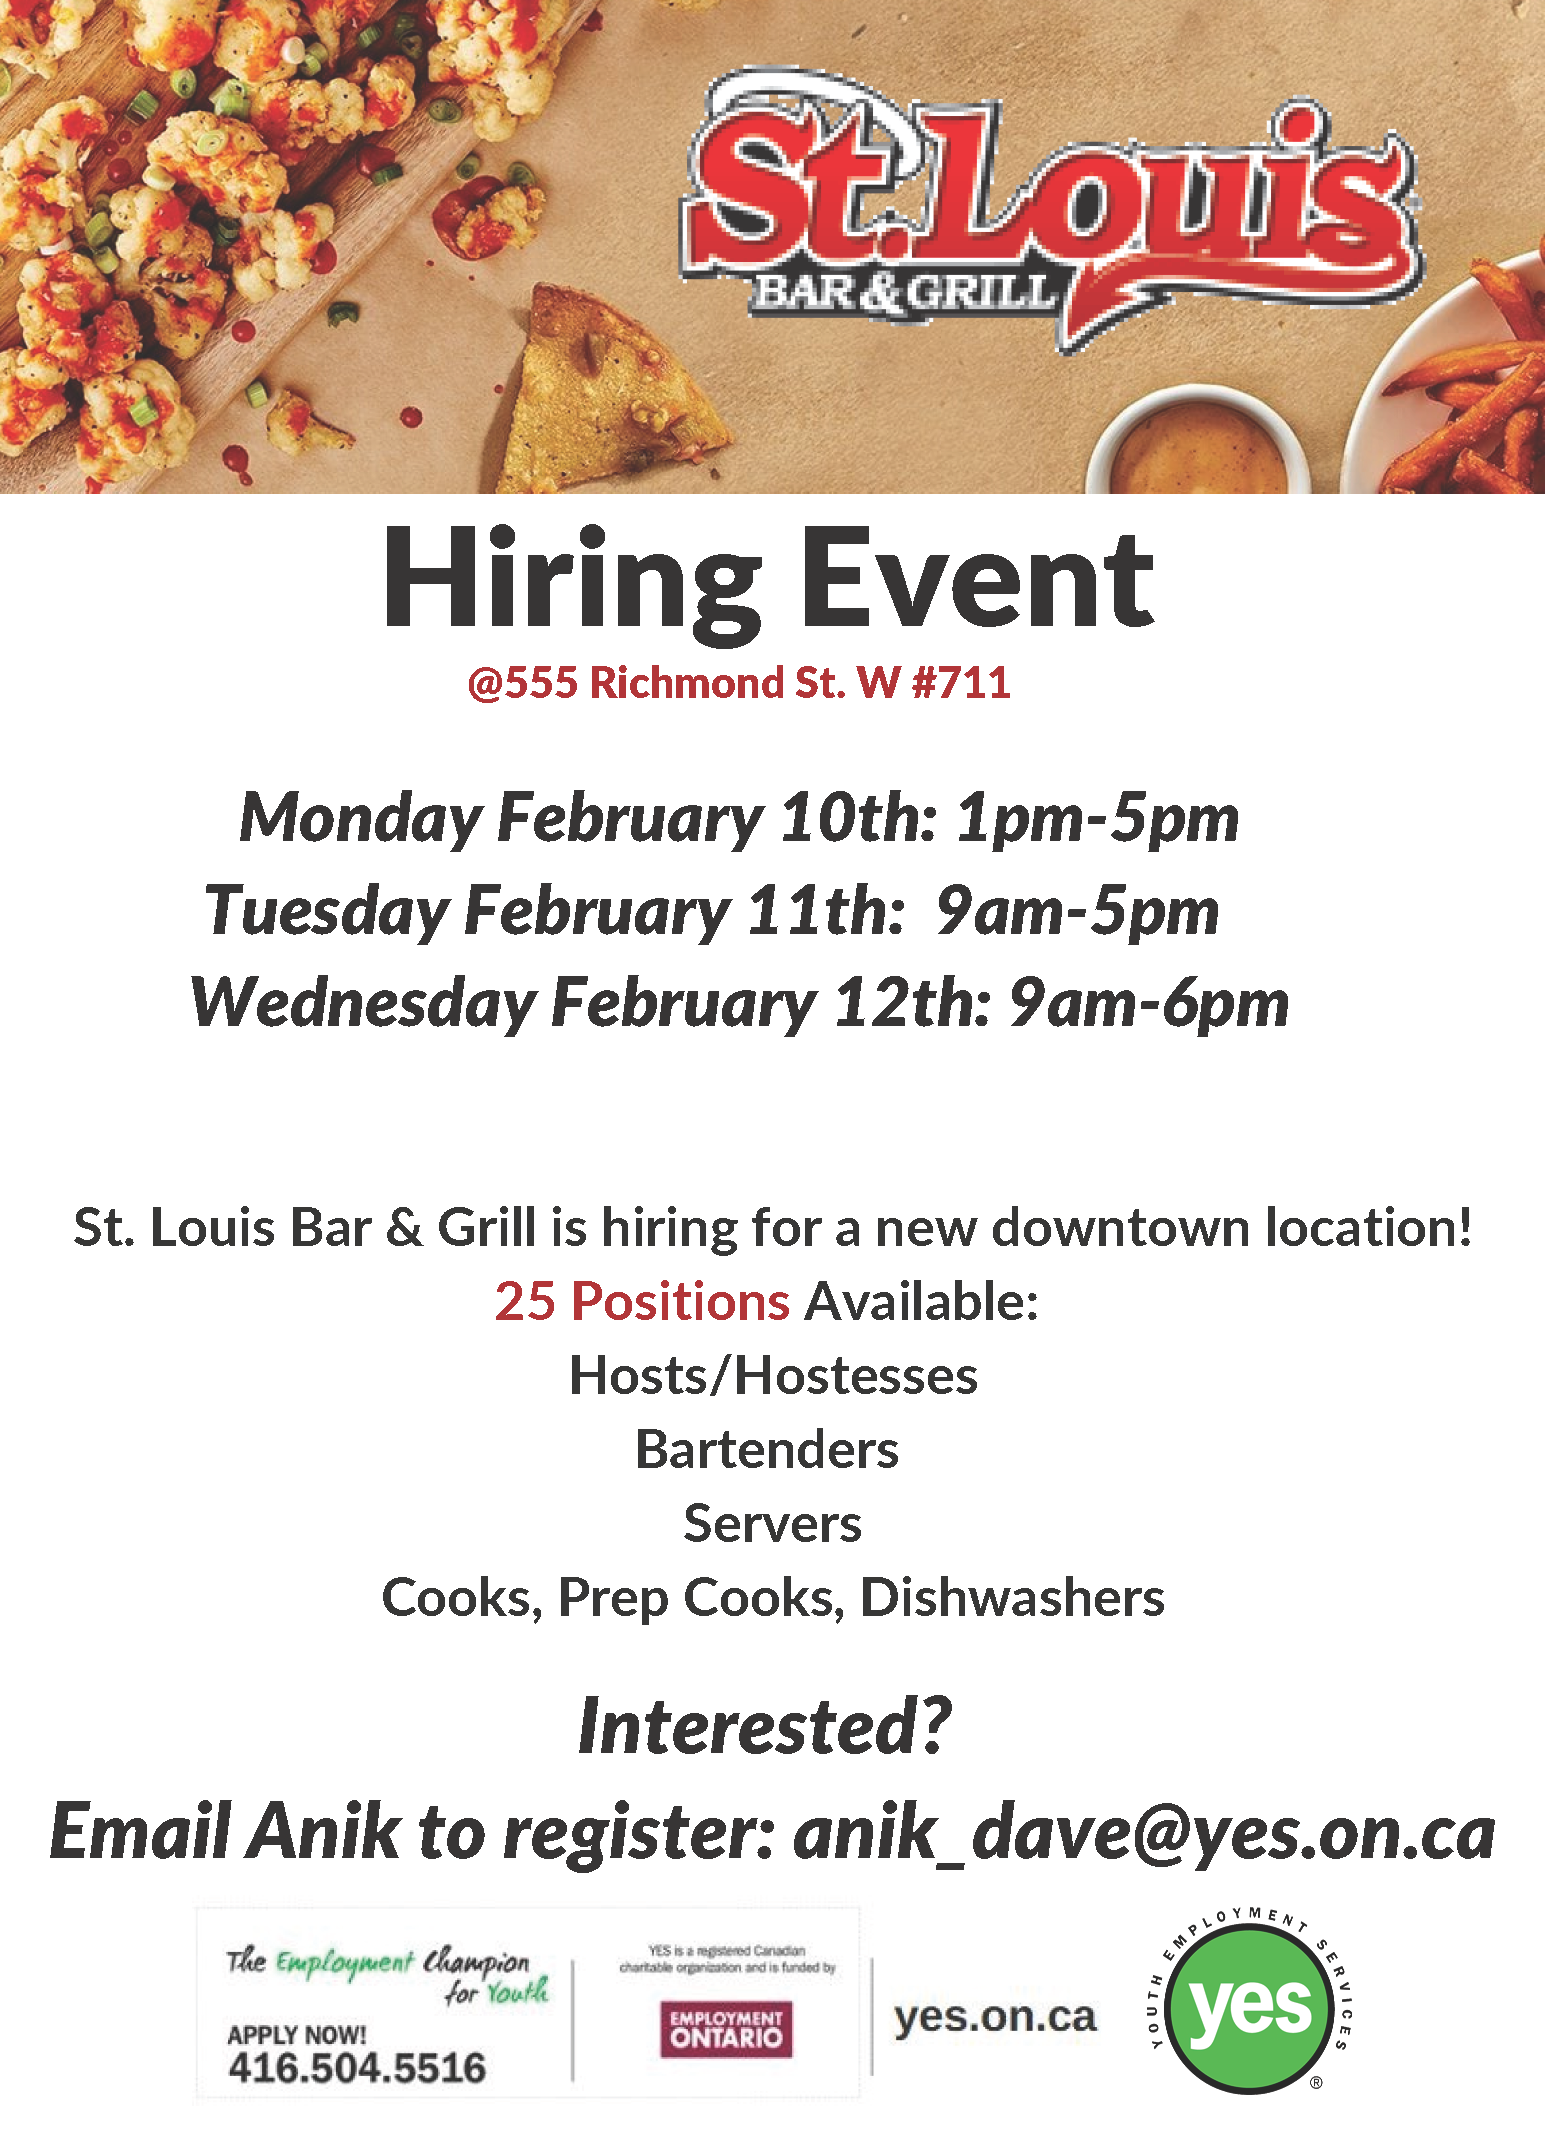 St. Louis Bar & Grill Hiring Event @ Youth Employment Services